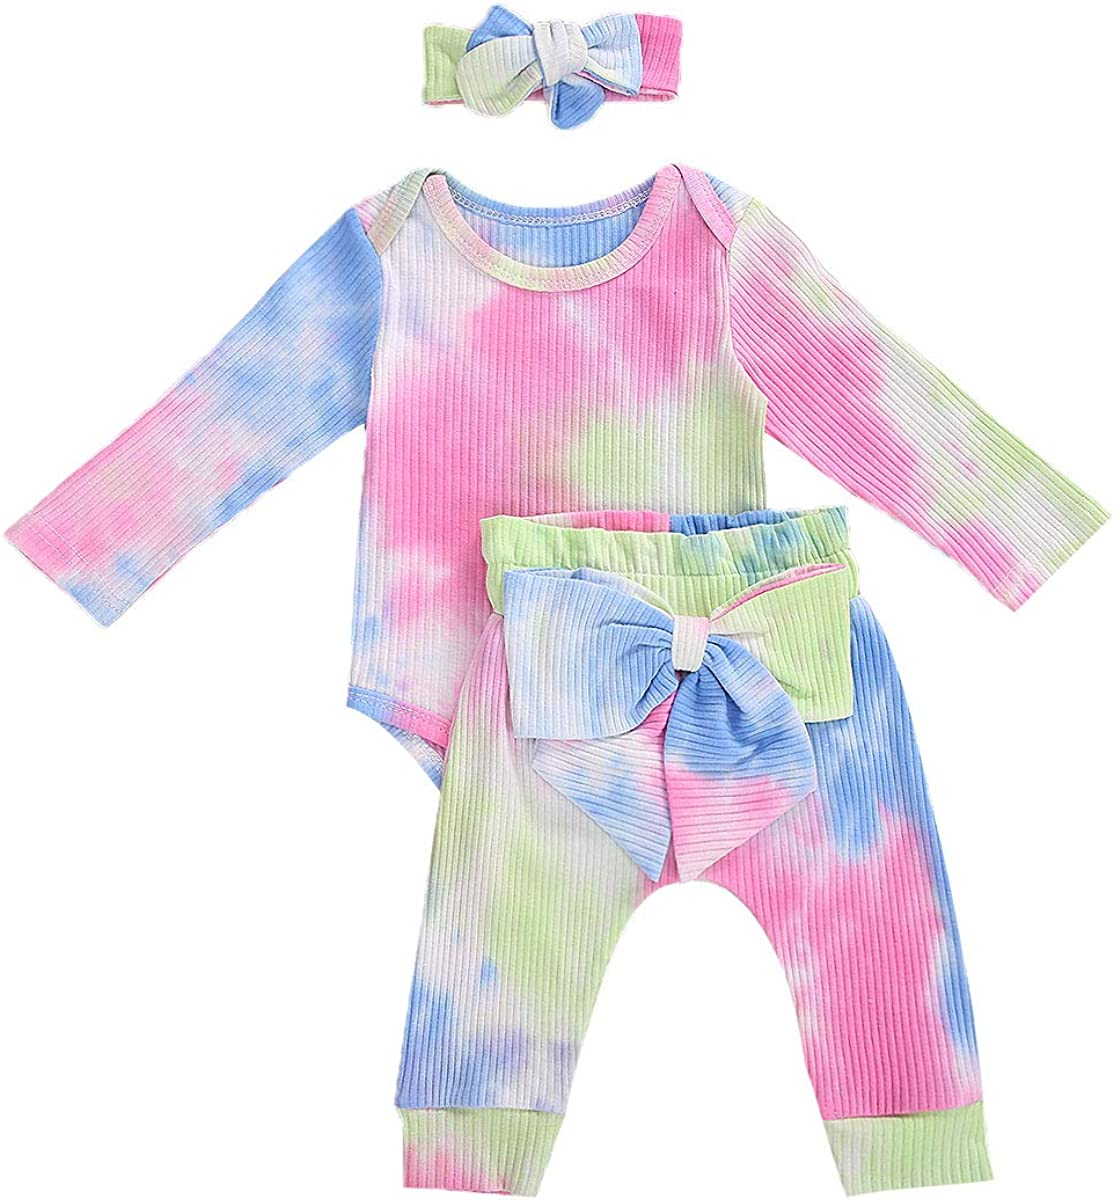 Boys New life Girls Tie-Dye Print Outfit Set Jacksonville Mall Romper Long To Sleeve Button